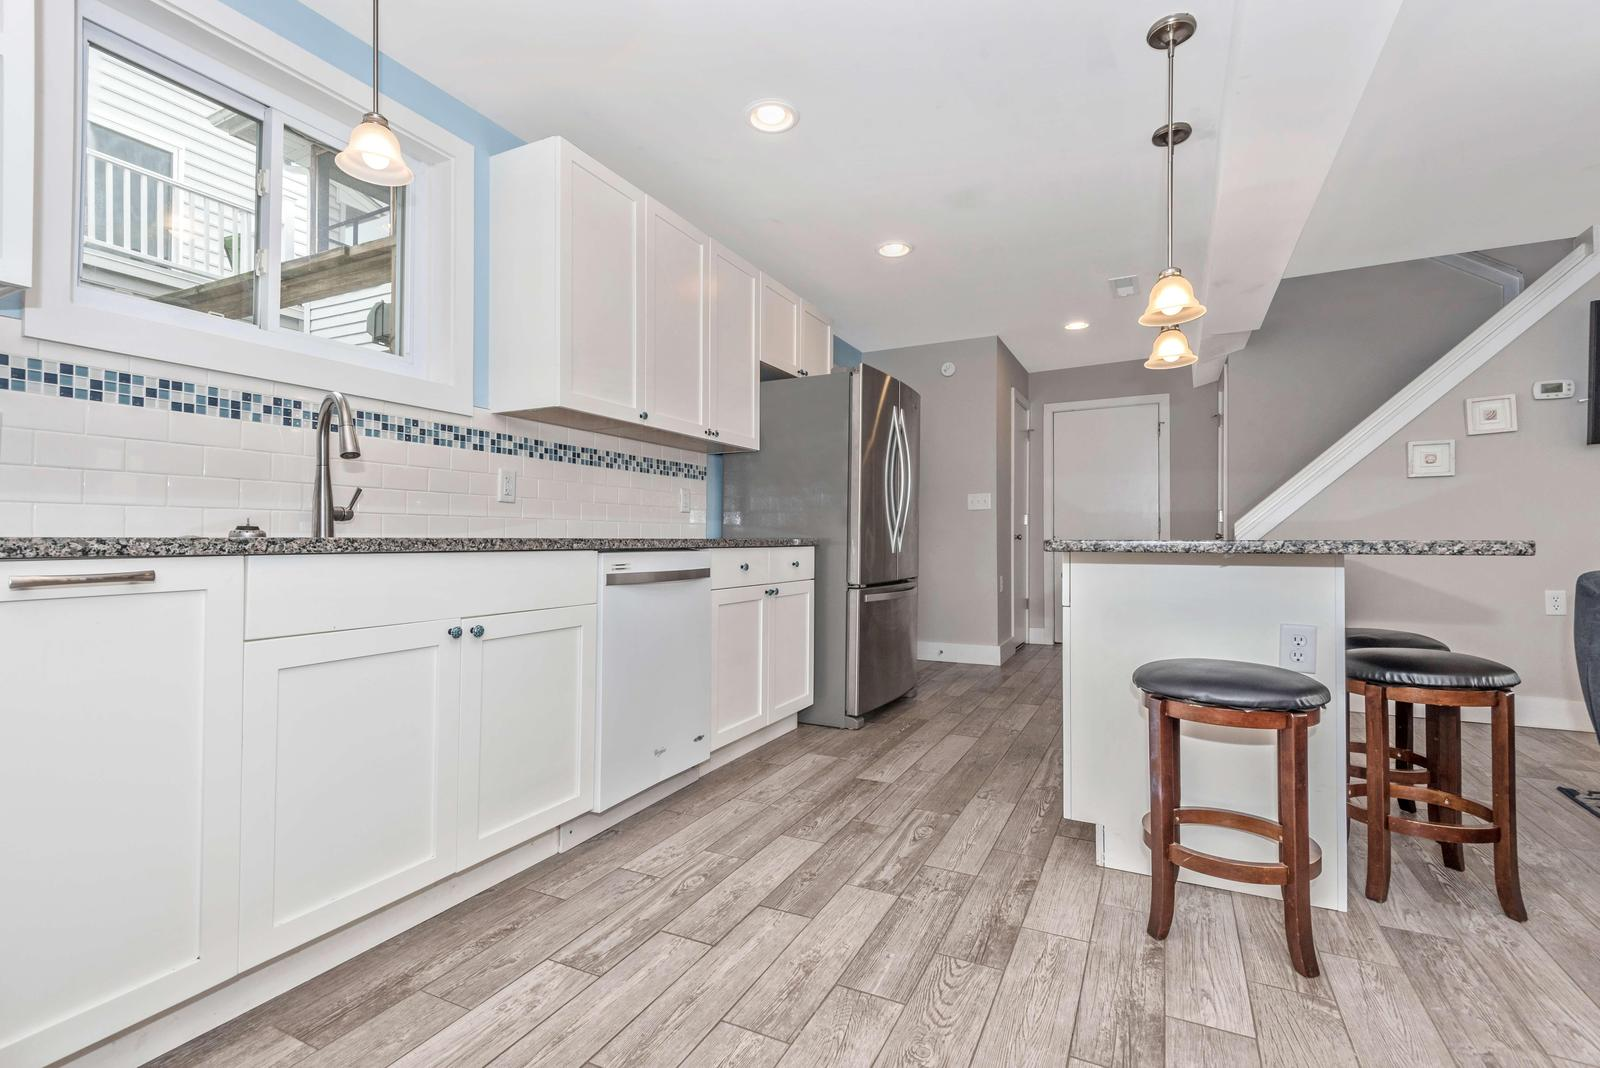 Plenty of counter space in the newly remodeled Kitchen